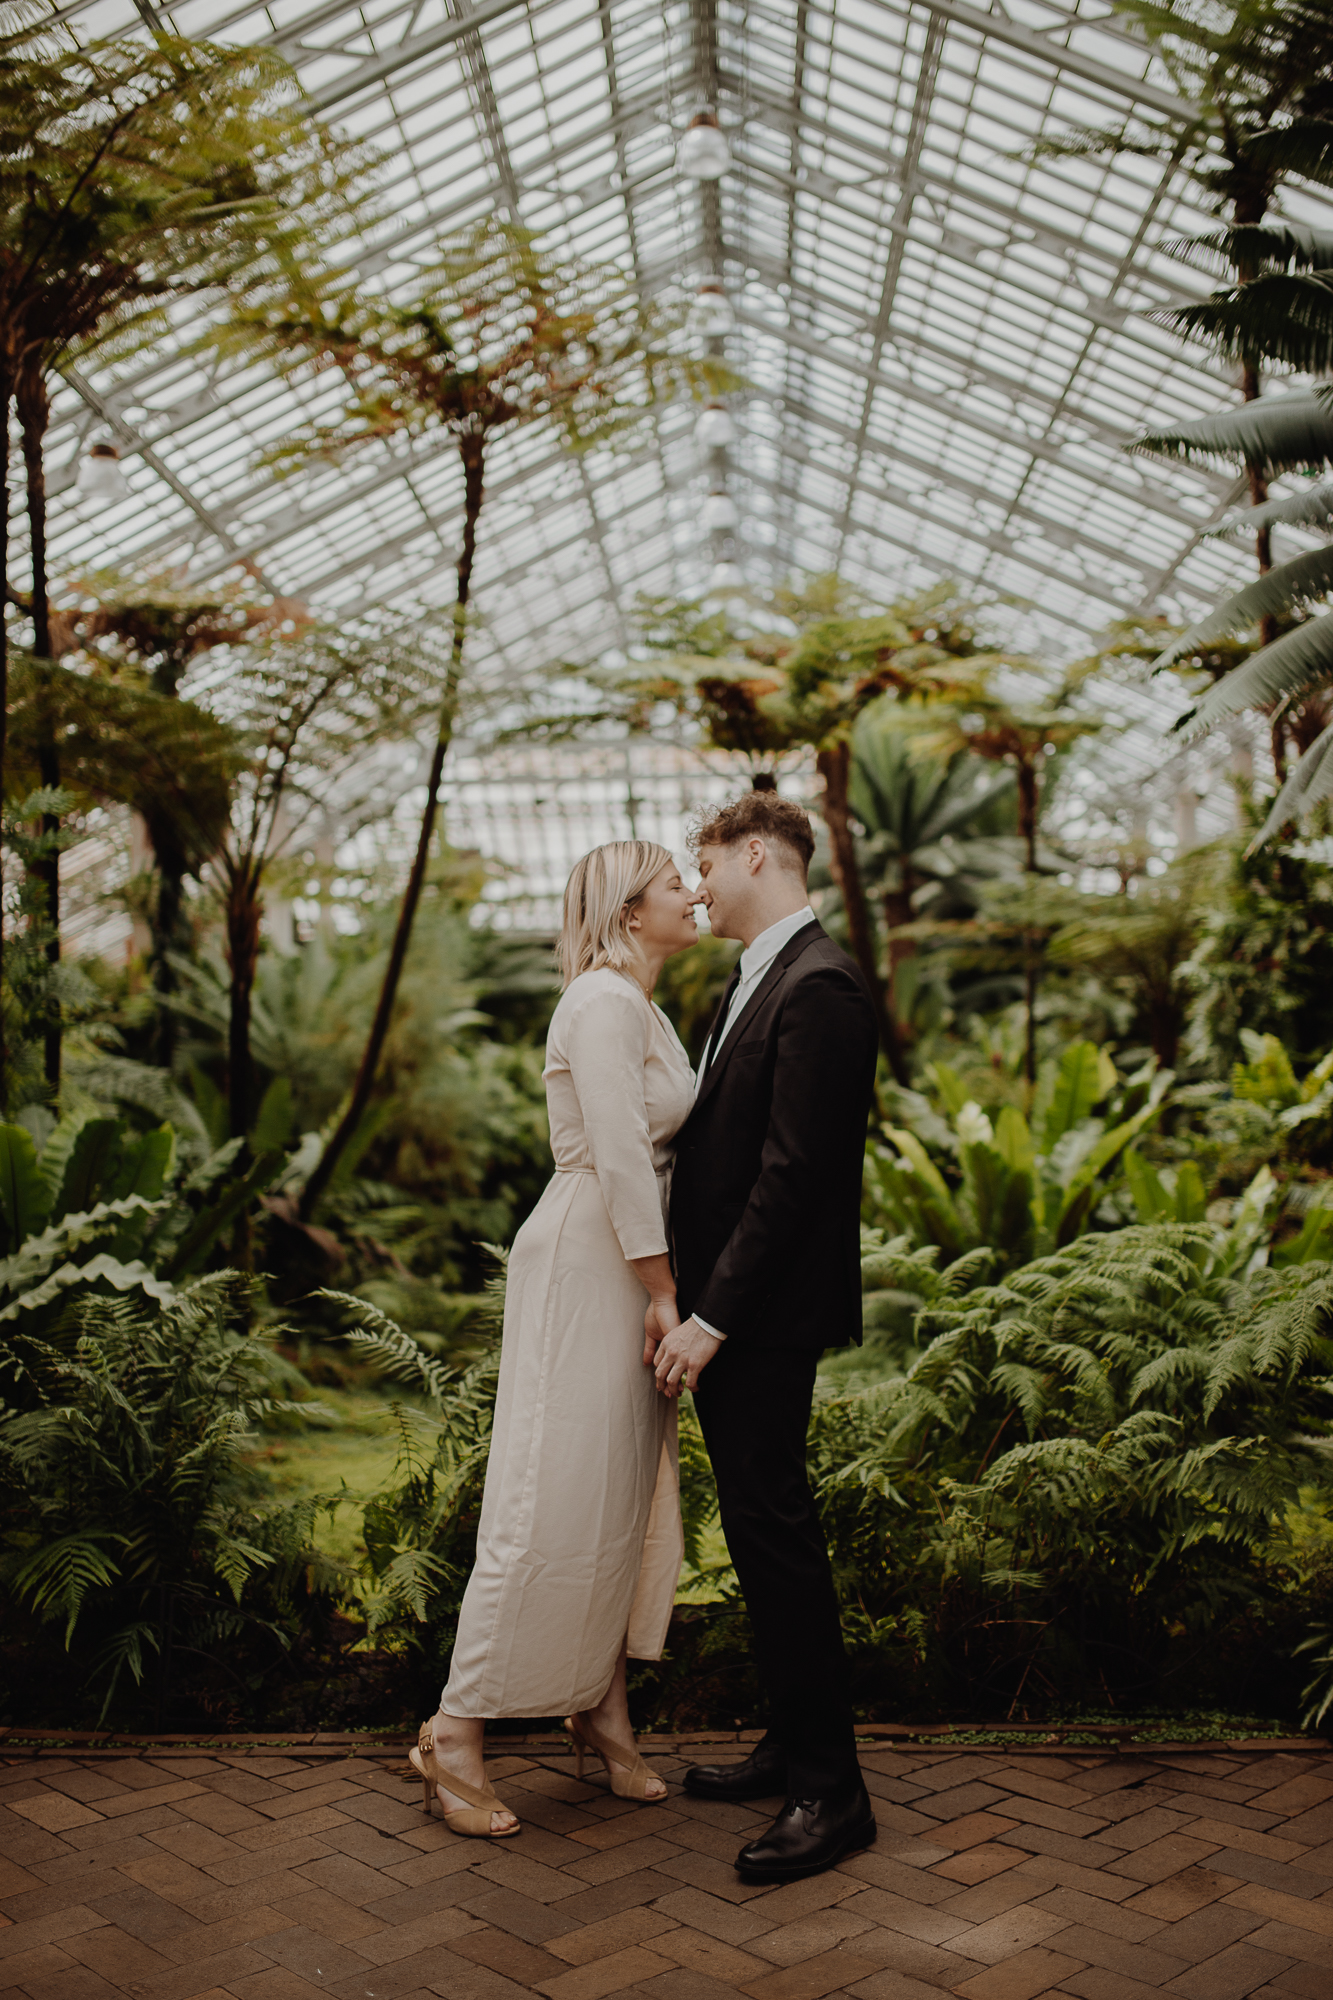 What to tell your wedding photographer